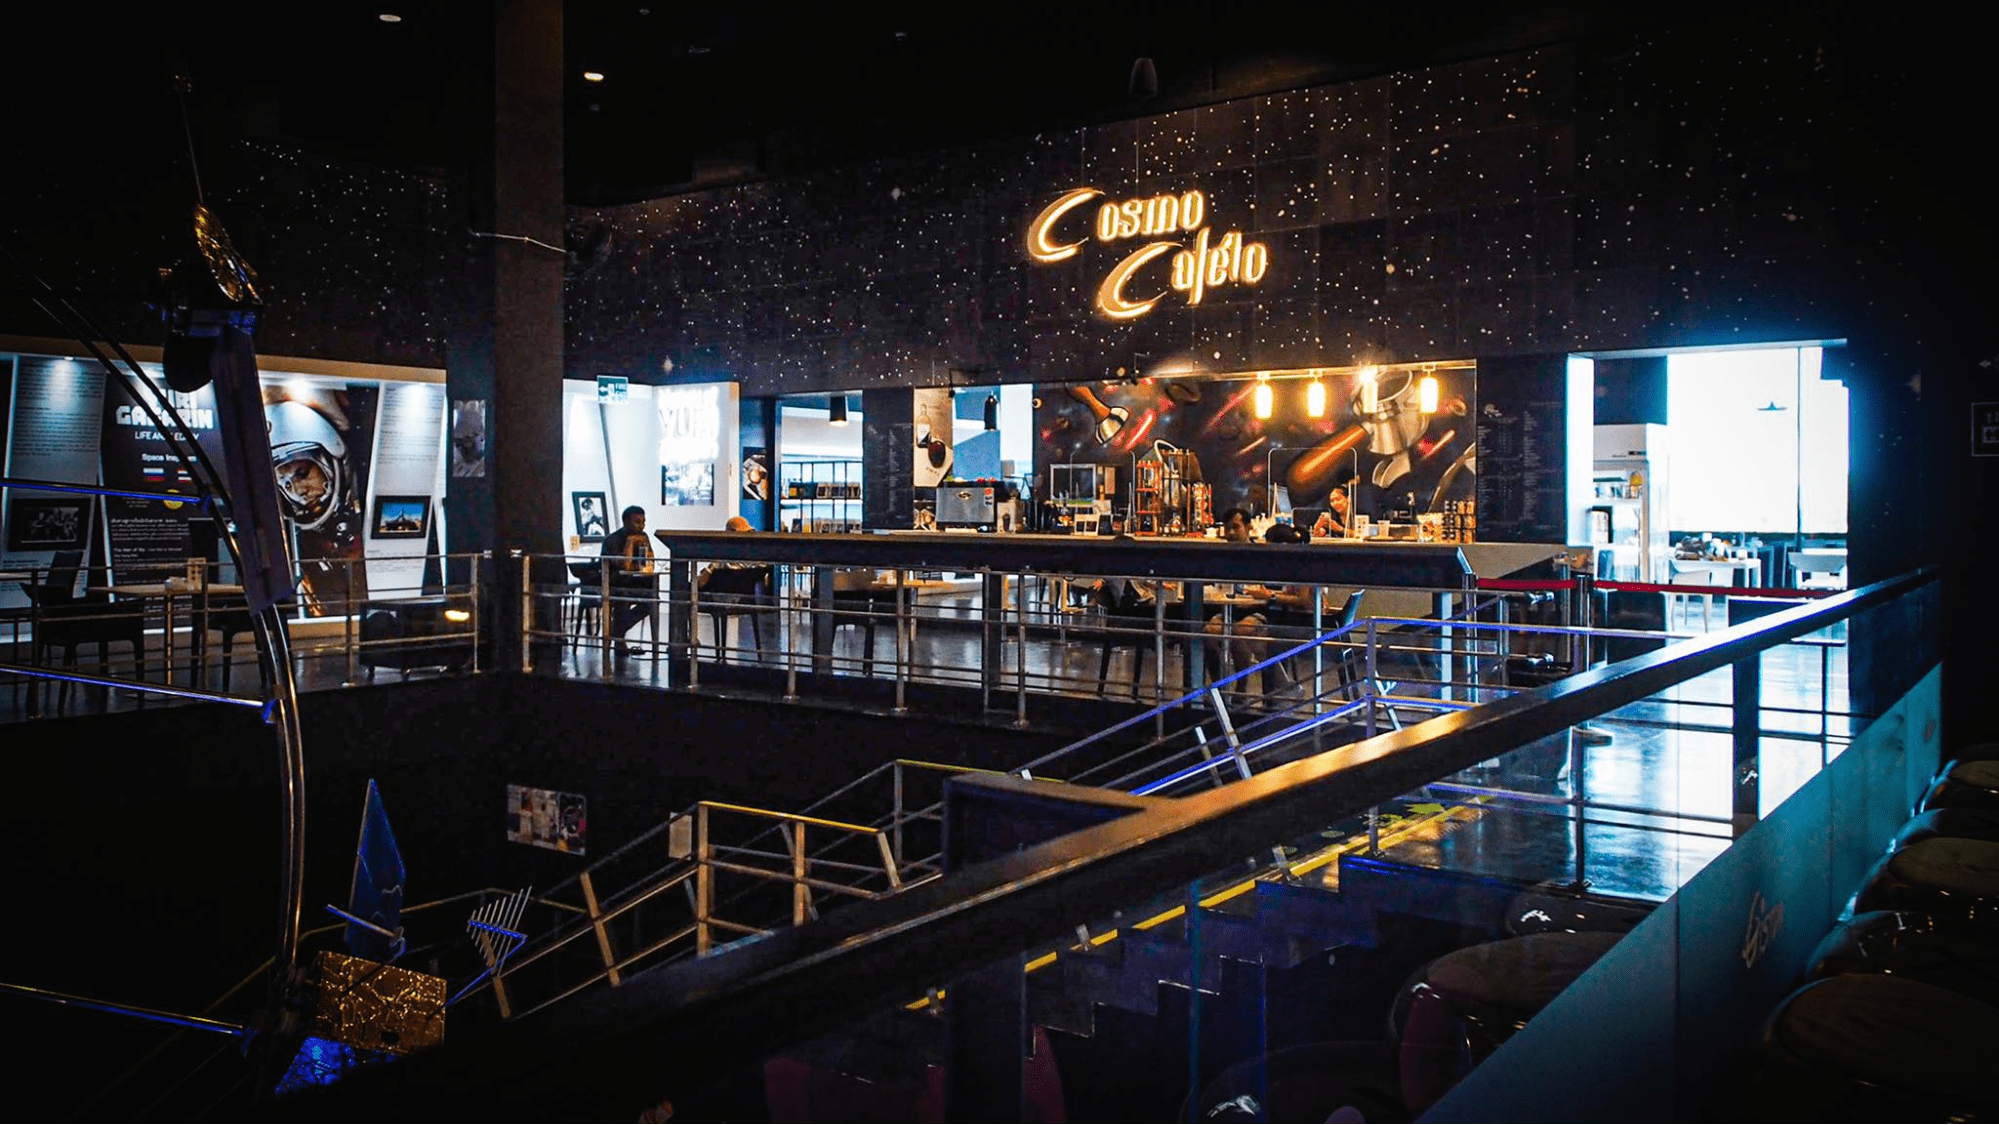 Cosmo cafe in Thailand